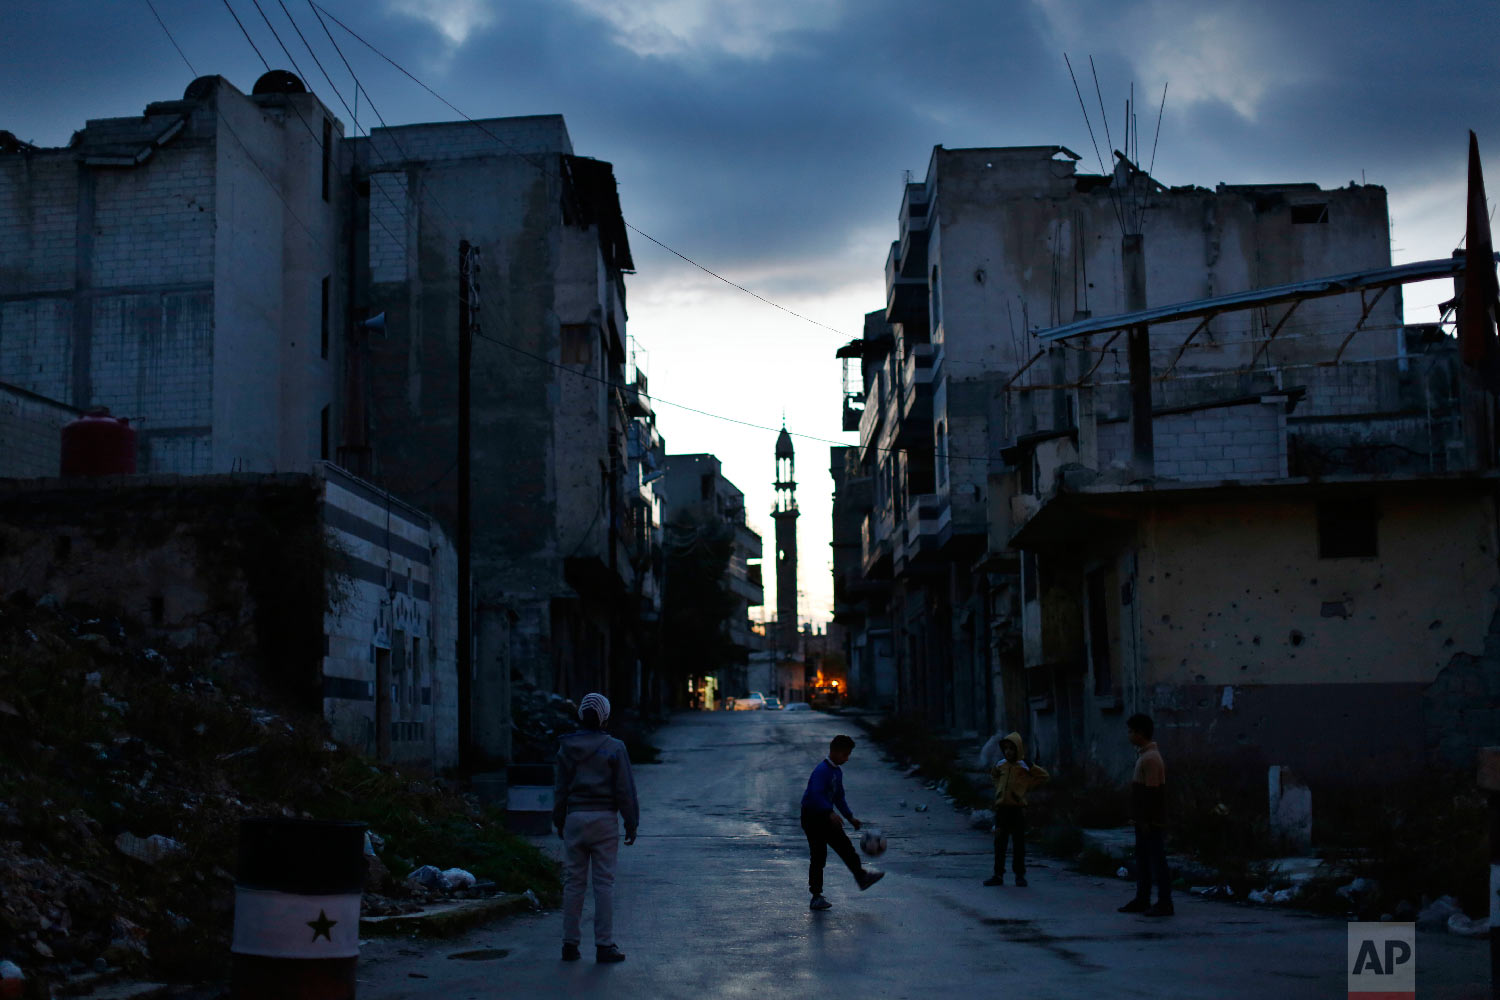 Children play soccer in the war-damaged Bab Dreib neighborhood of the old city, in Homs, Syria, Jan. 16, 2018. (AP Photo/Hassan Ammar)